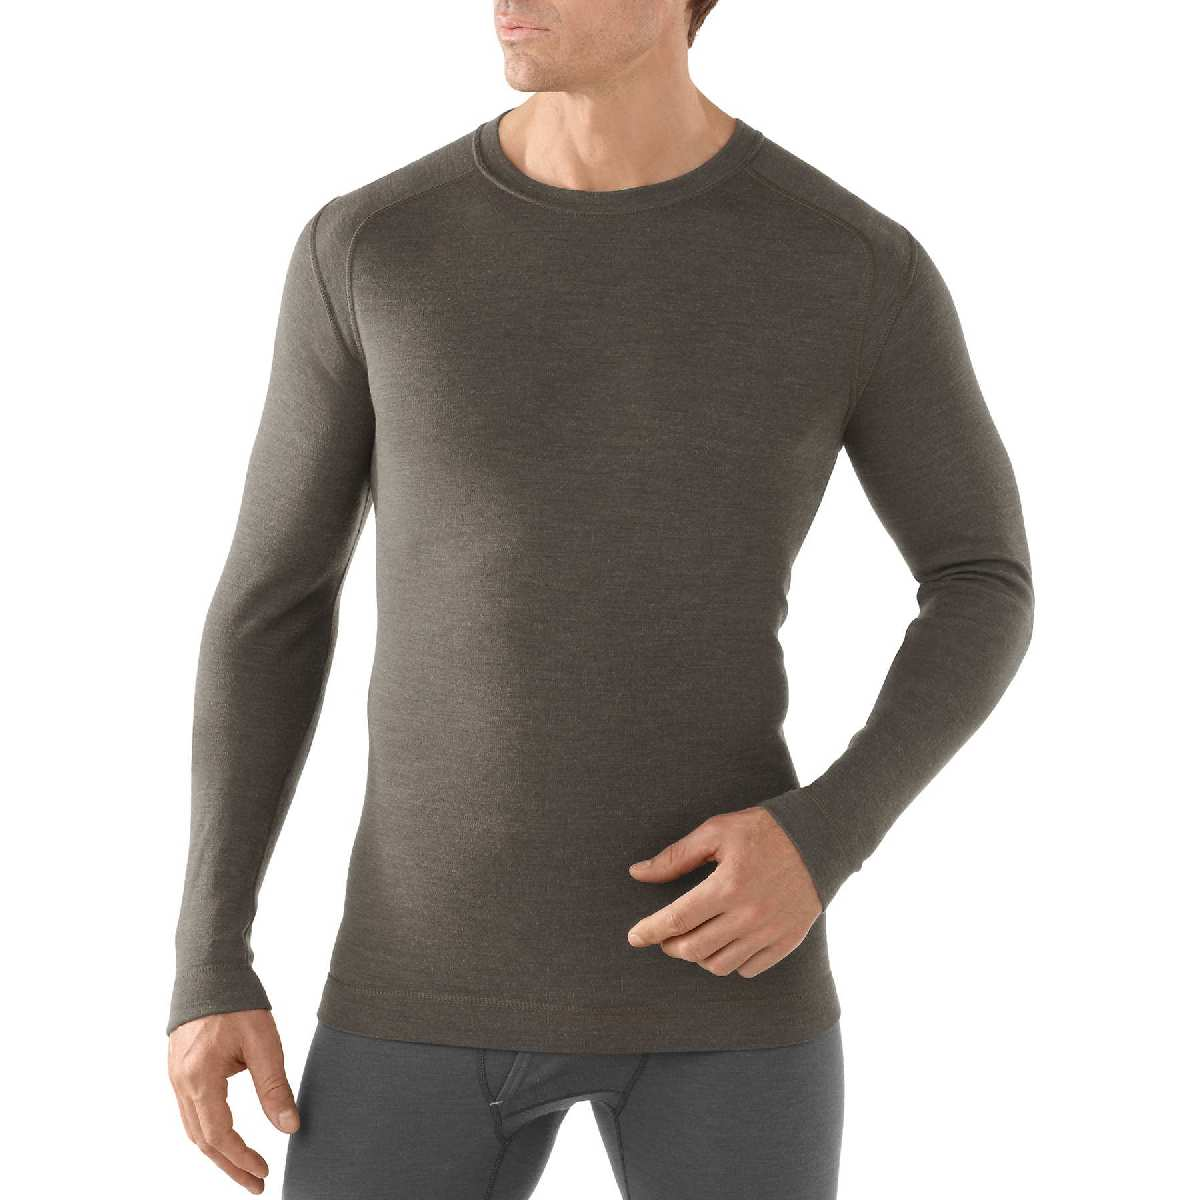 SmartWool NTS Mid 250 Crew Long Sleeve Base Layer Men's Size XXL TaupeHeather U.S.A. & Canada